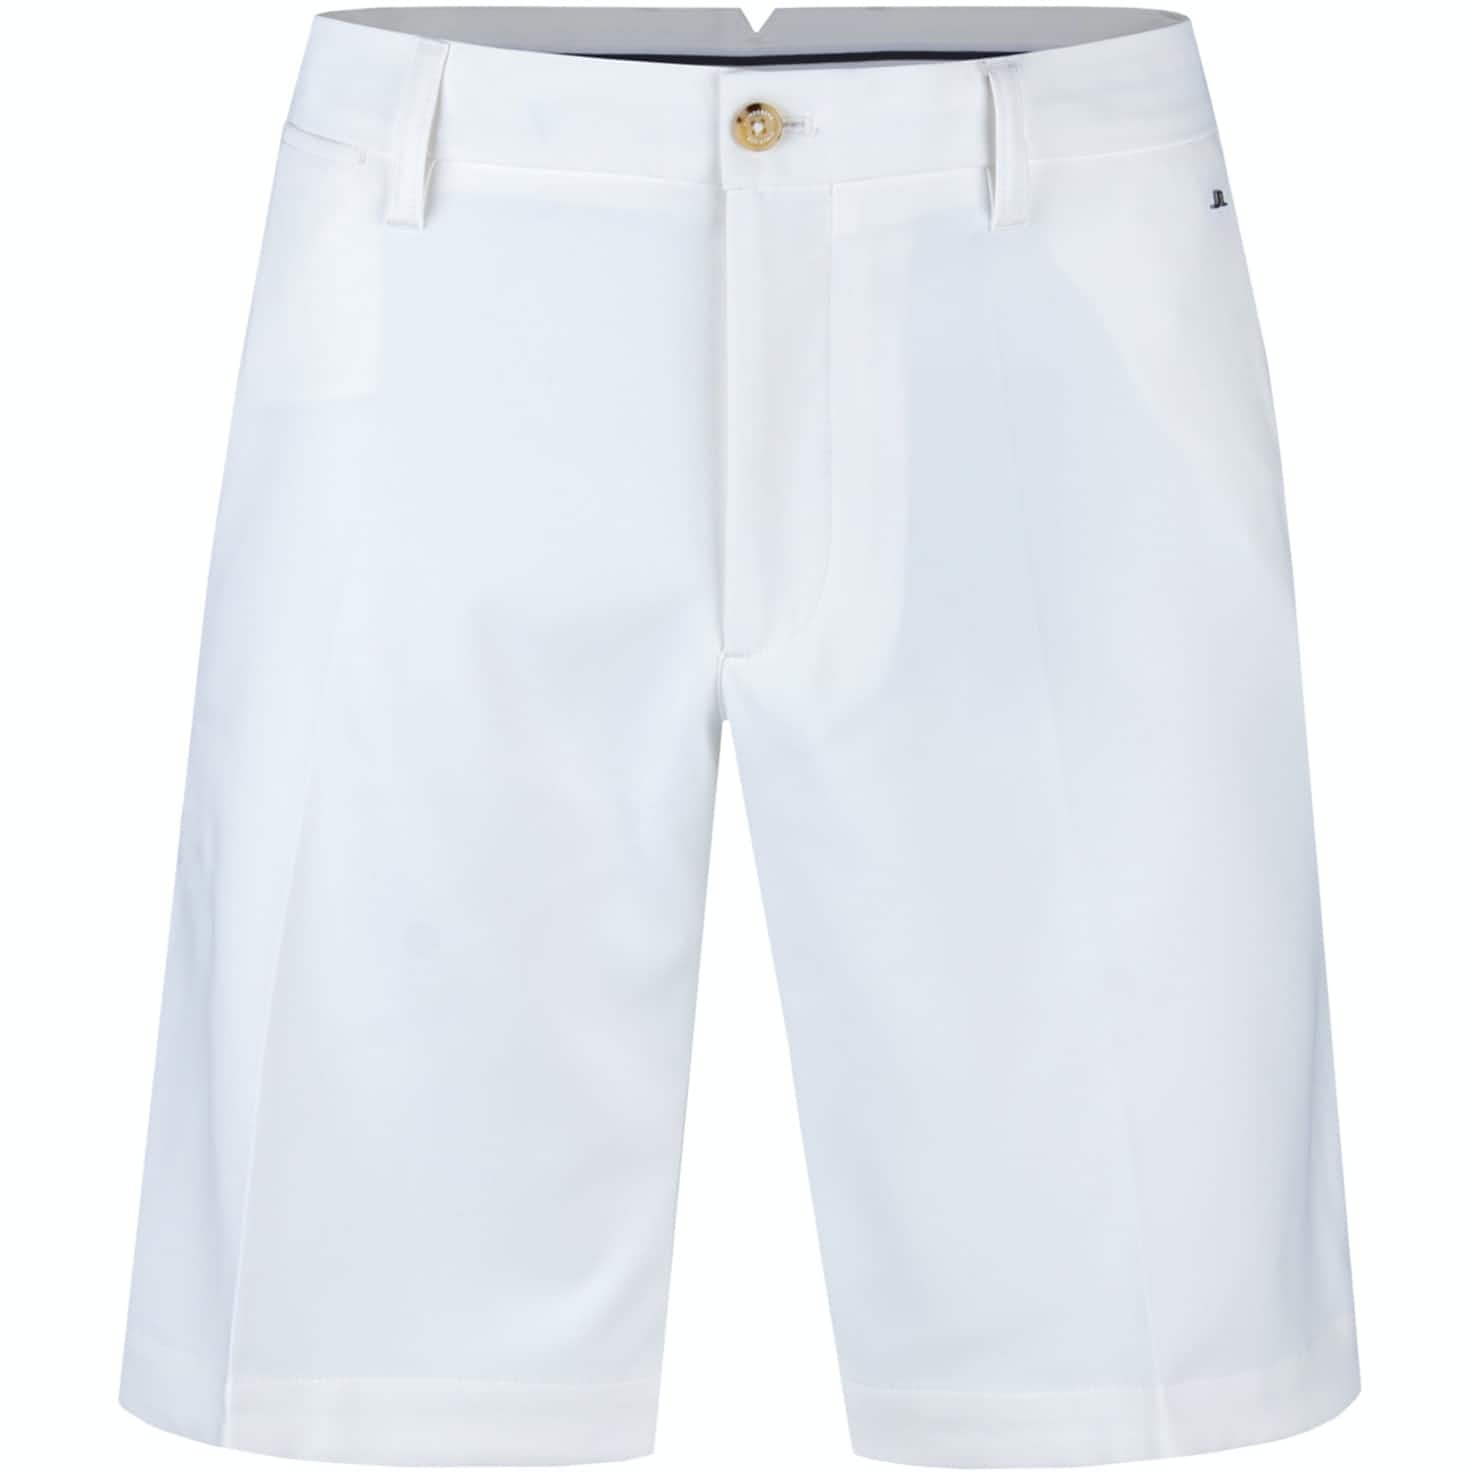 Eloy Tapered Micro Stretch White - 2020